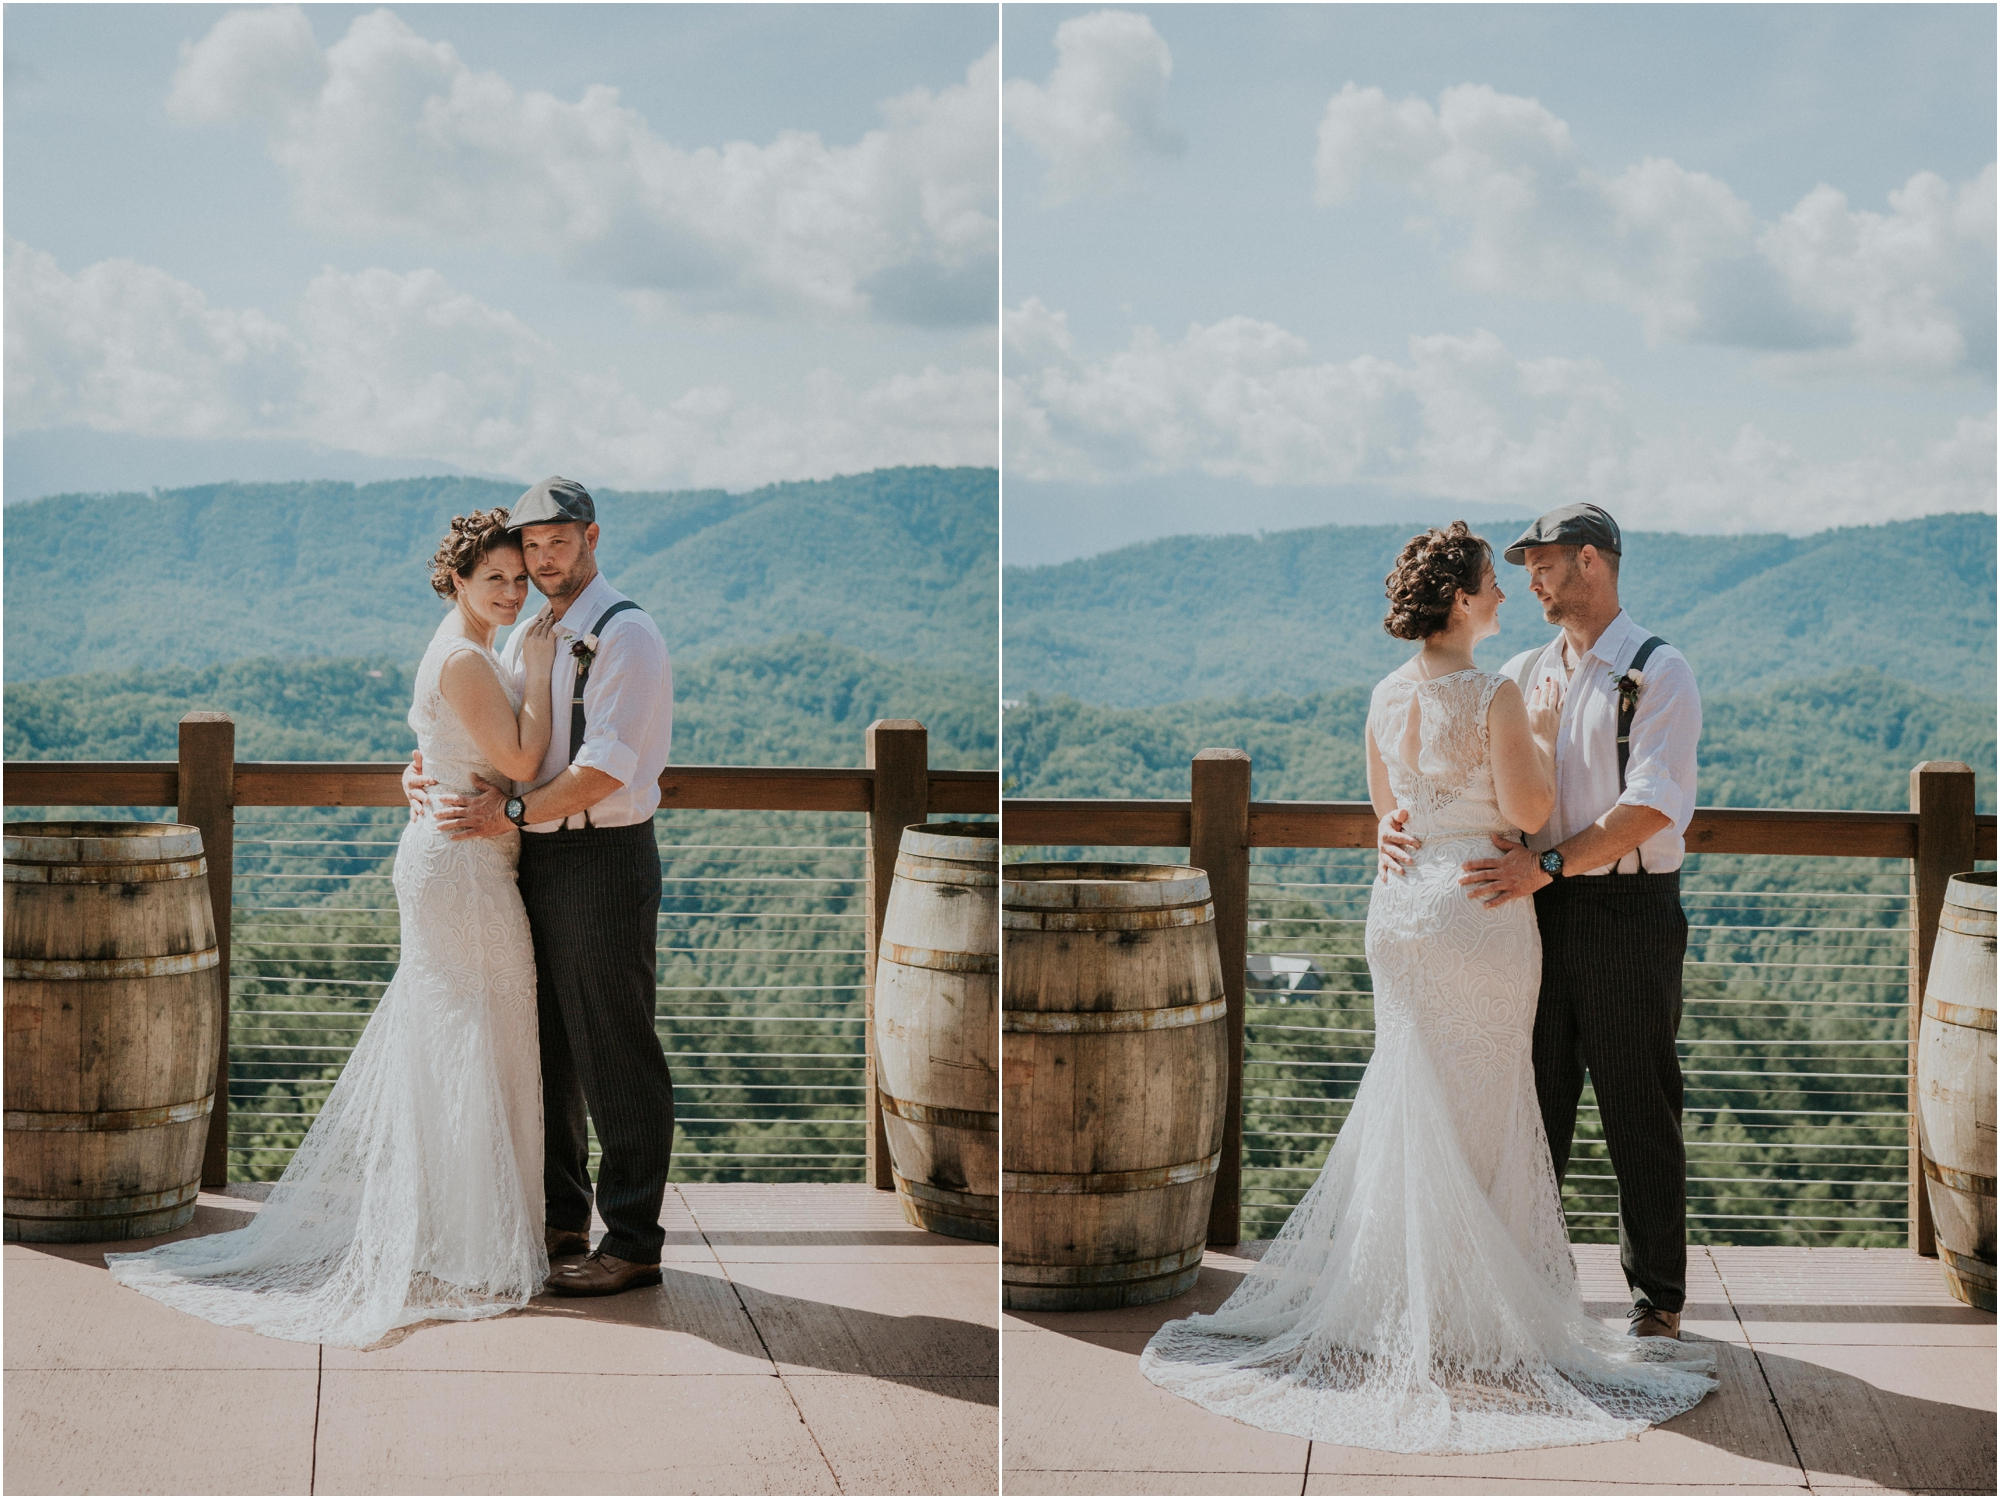 cabin-parkside-resort-the-magnolia-venue-tennessee-mountain-views-intimate-wedding_0094.jpg